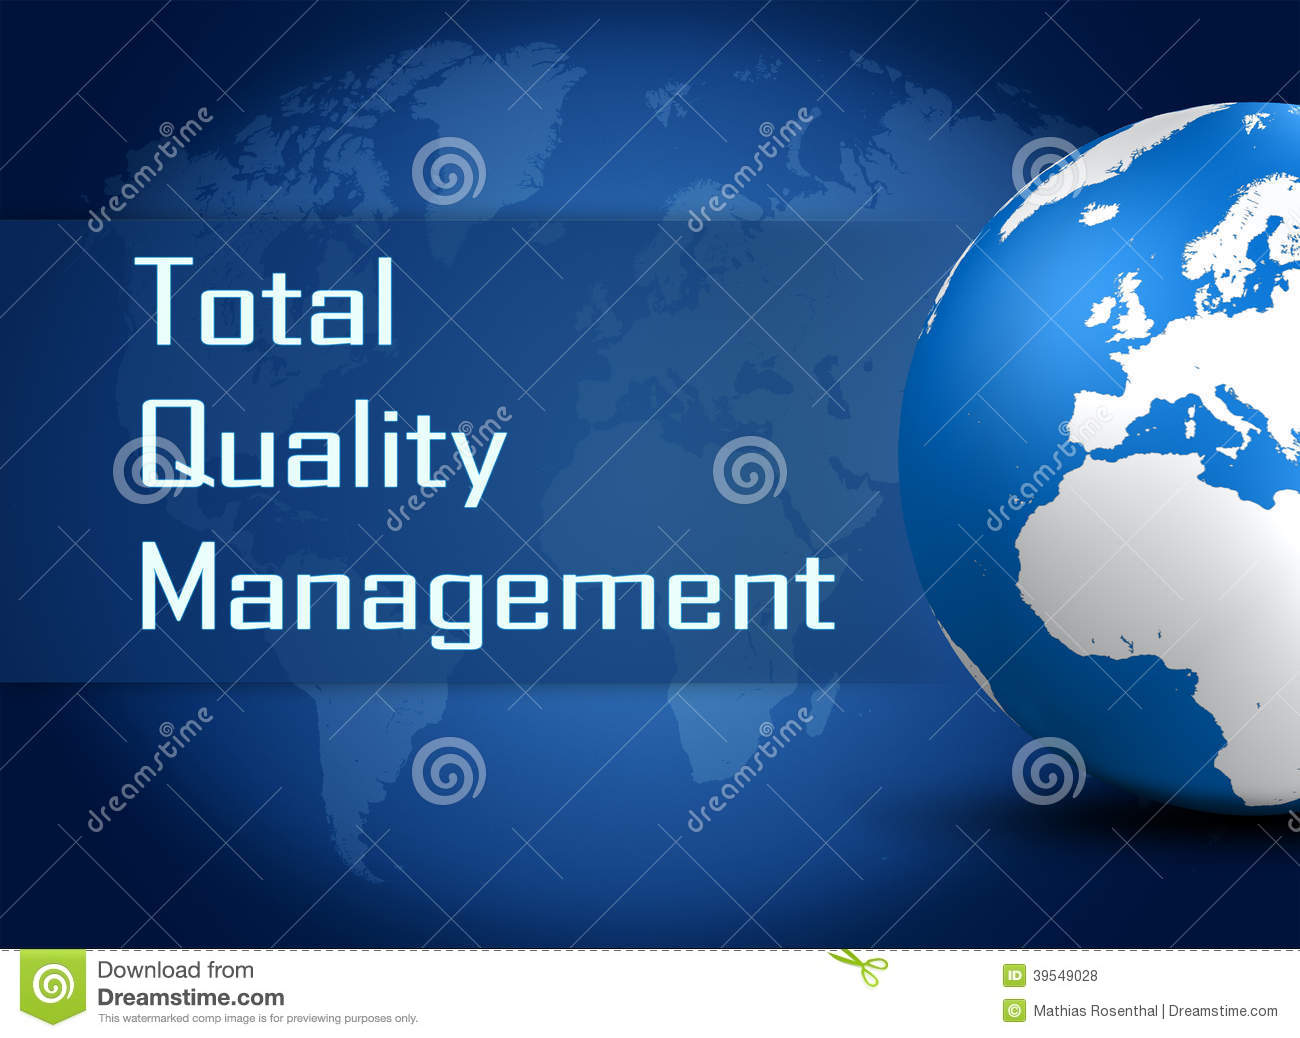 Background image quality - Total Quality Management Stock Illustration